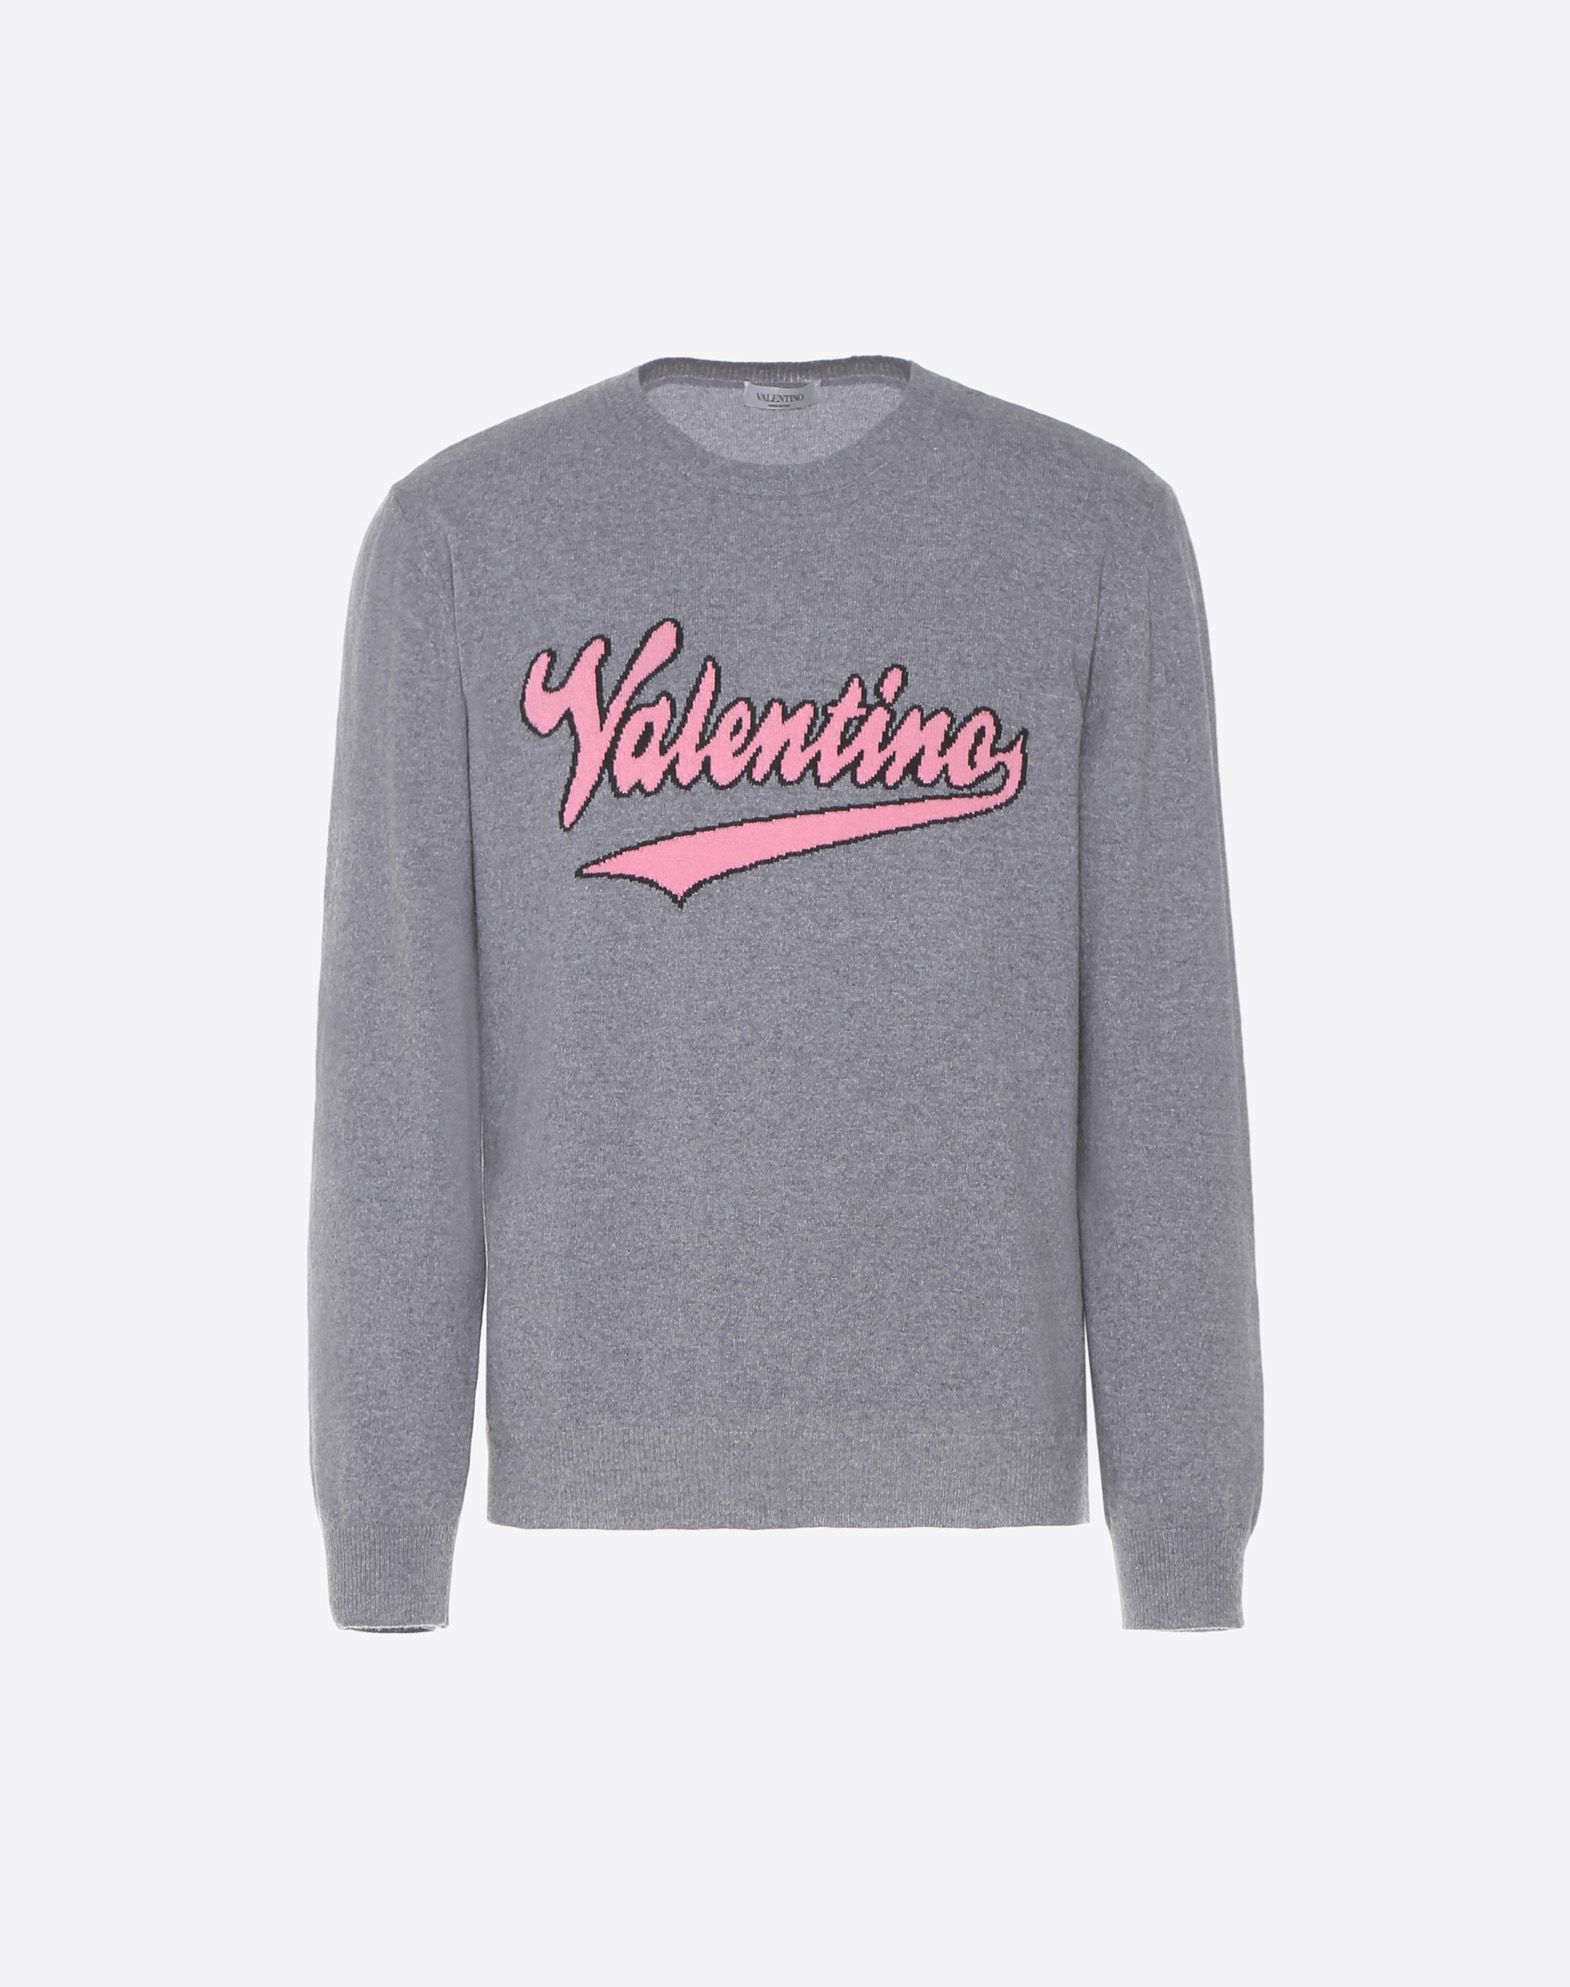 VALENTINO Knitted Logo Lightweight sweater Long sleeves Basic solid color Round collar  12111058lm